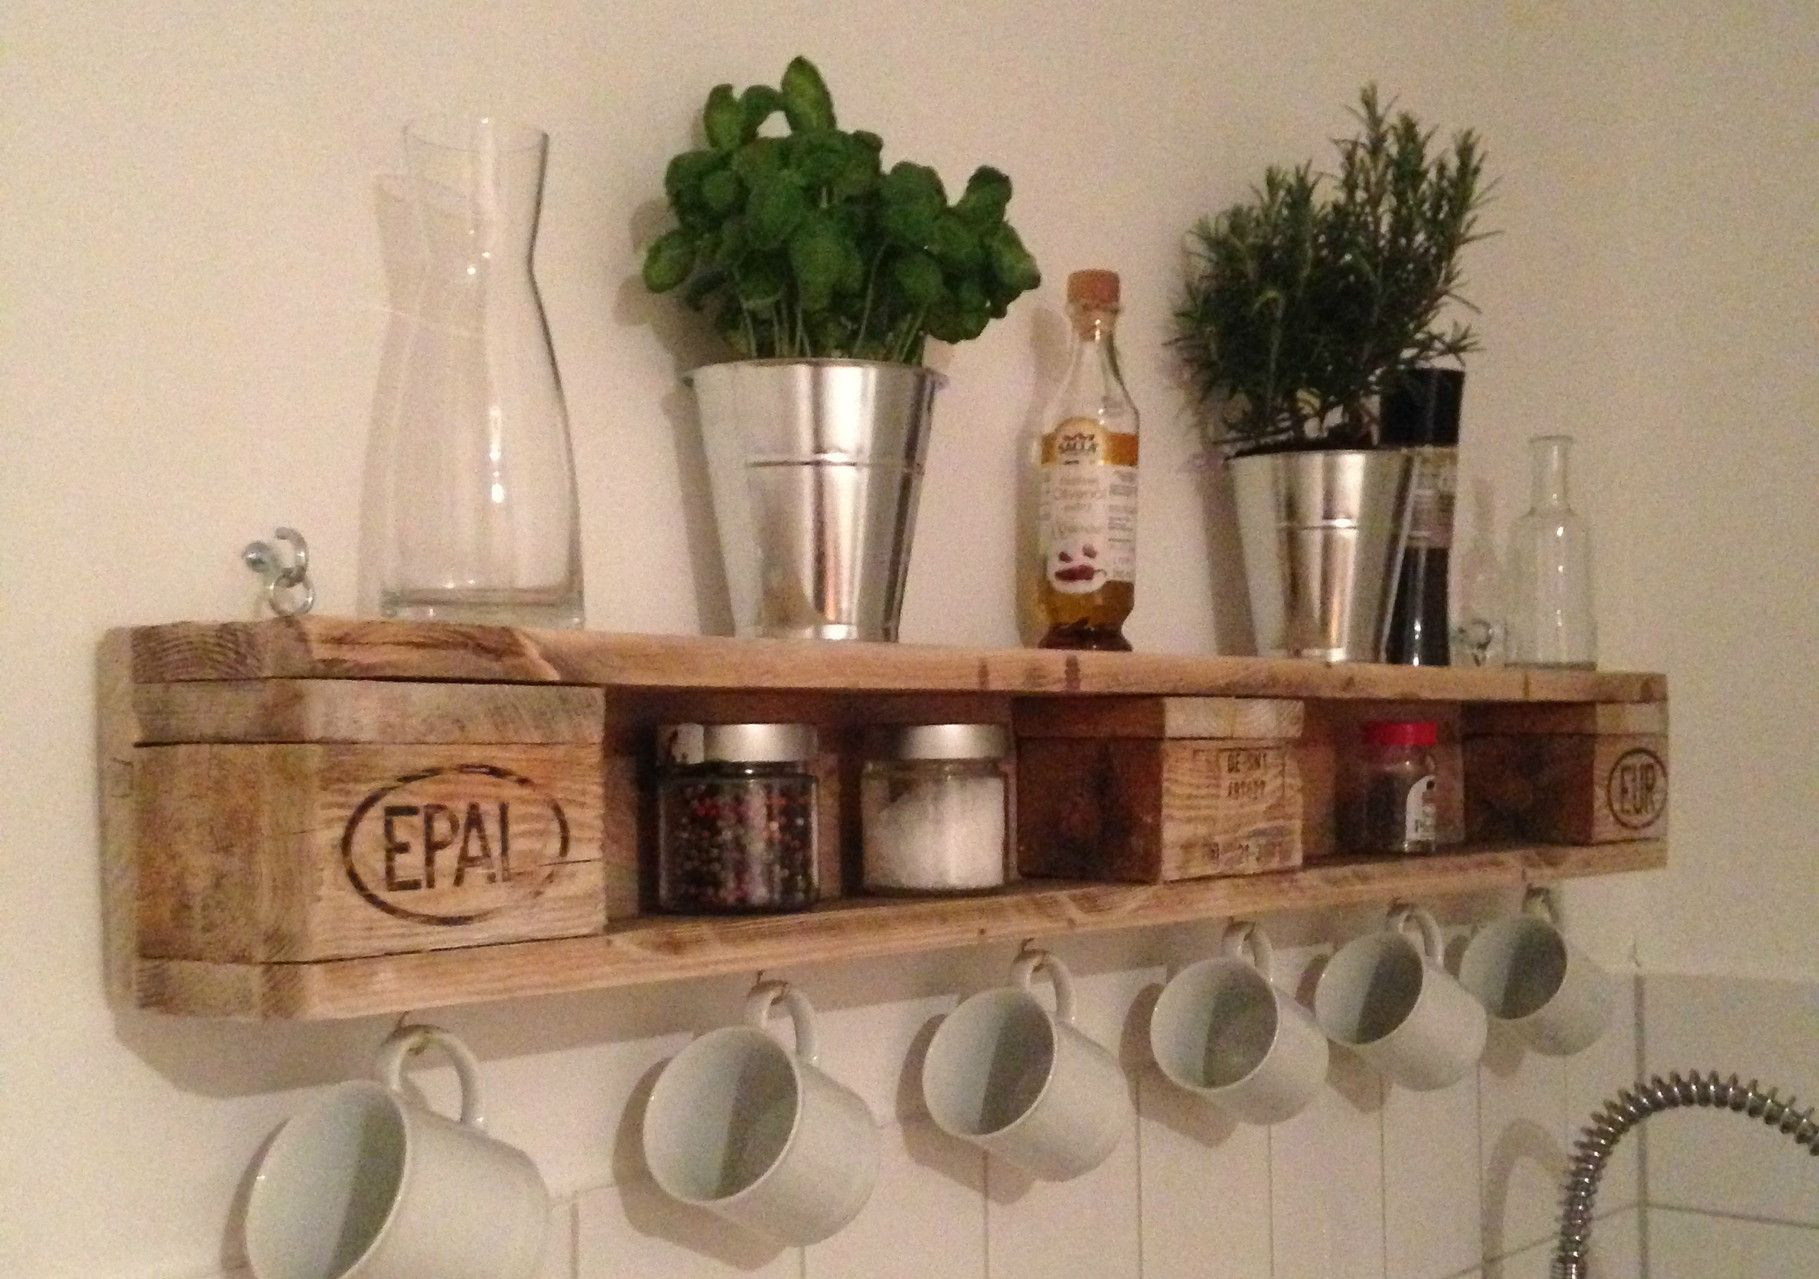 Europalette Als Regal Diy Wandregal Aus Europaletten Europalette Kitchen